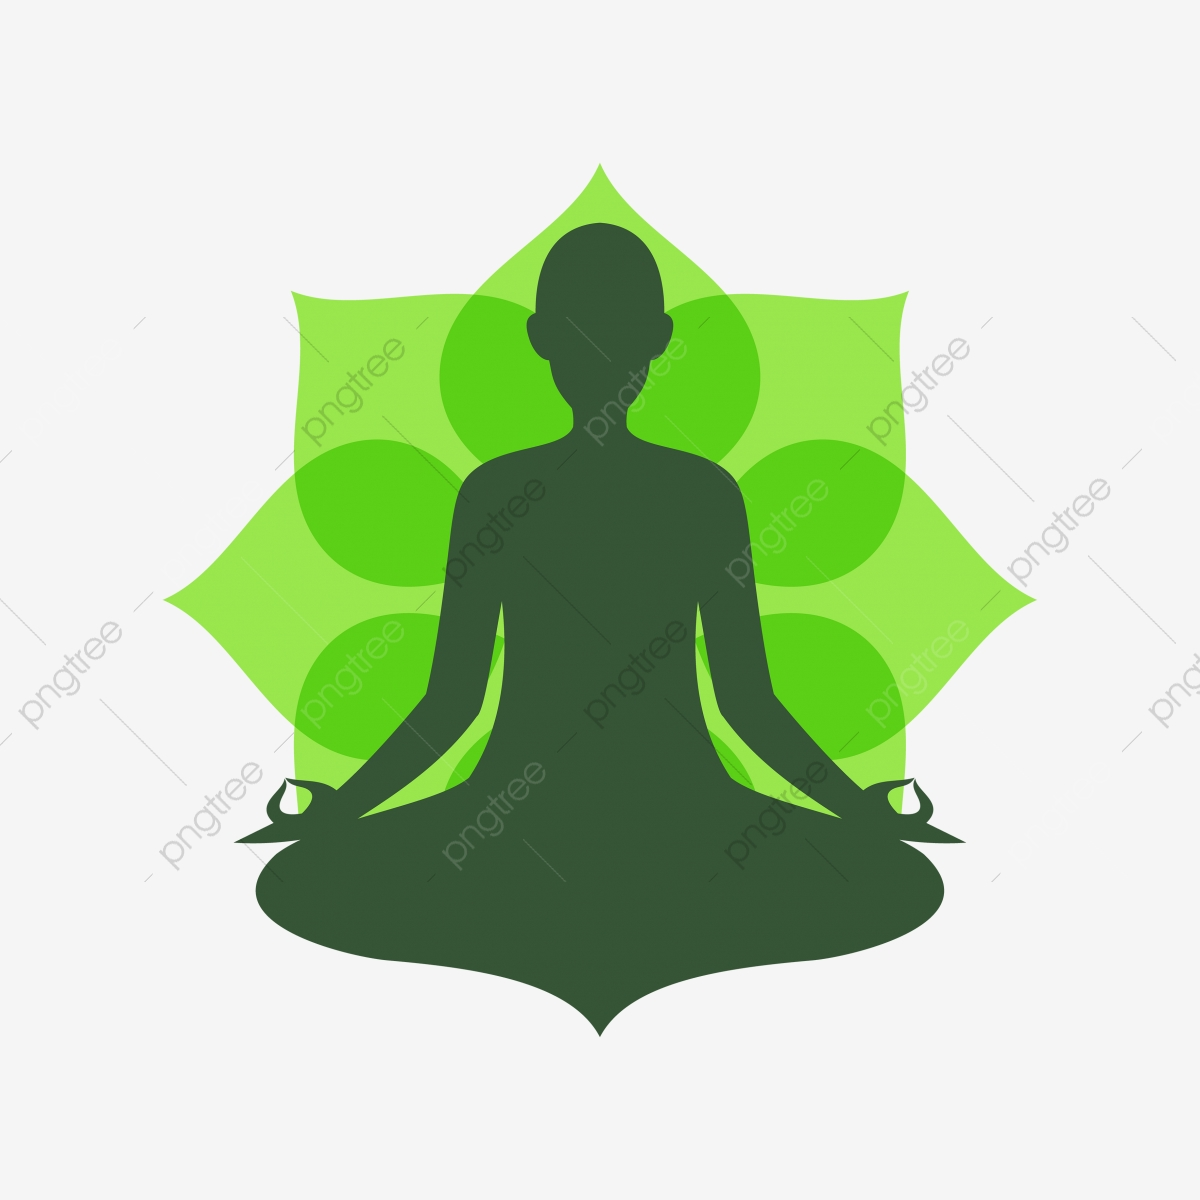 Yoga Meditation 9, Yoga, Meditation, Mandala PNG and Vector.